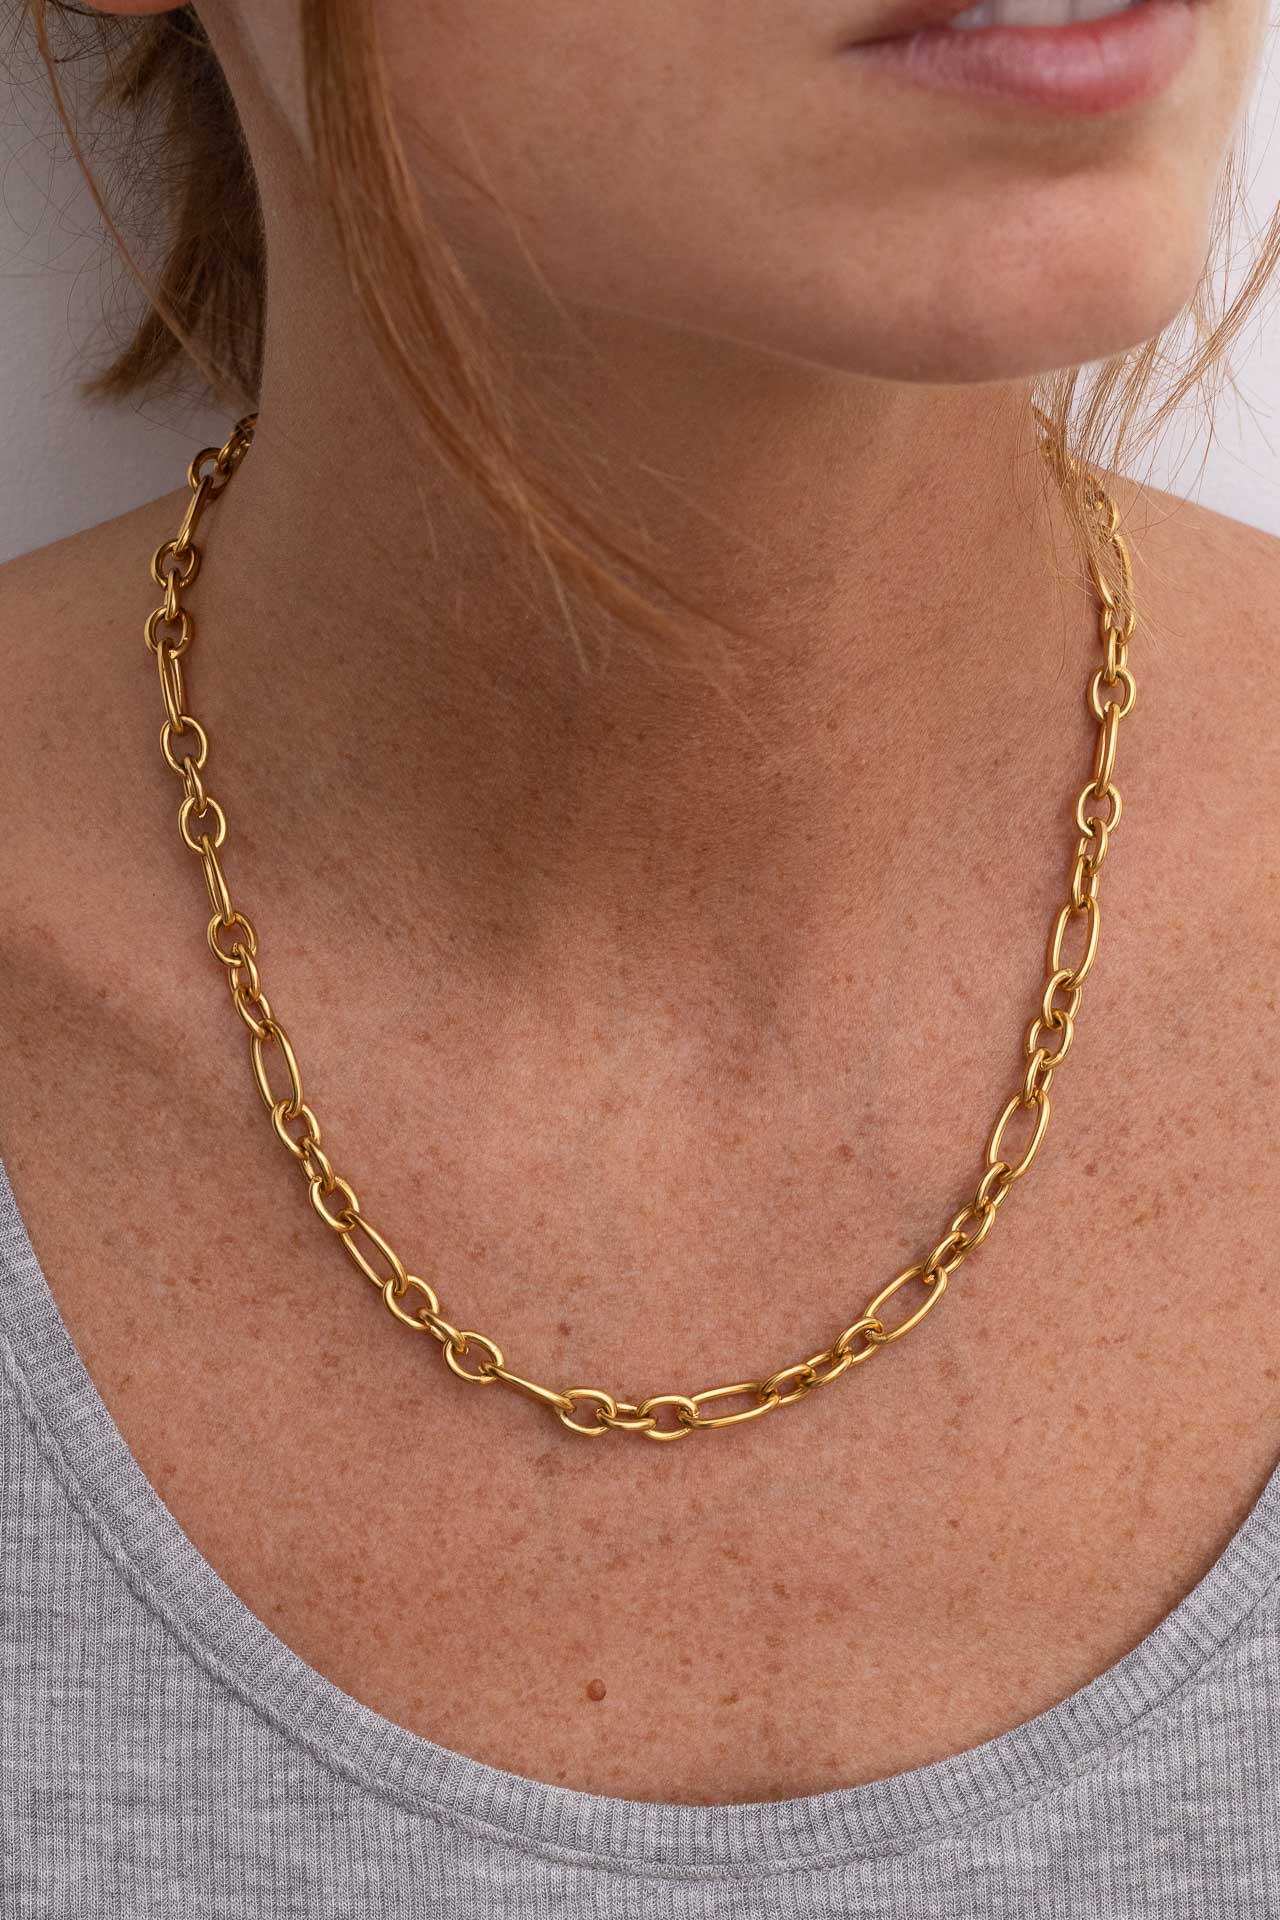 Chaine grosse maille femme